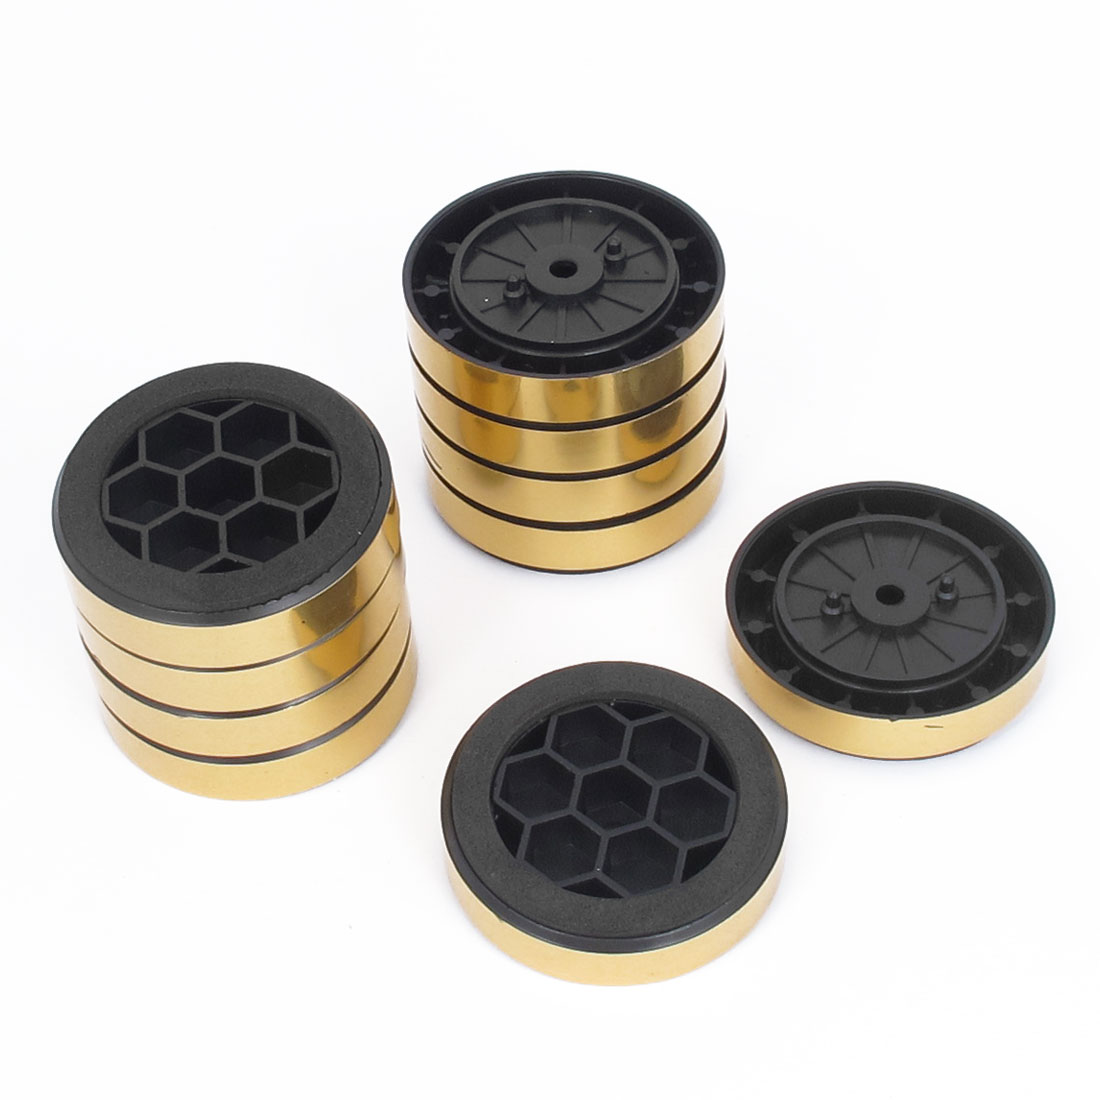 10pcs ABS Machine PC Amplifier Project Box Speaker Cabinet Feet Pads Gold Tone